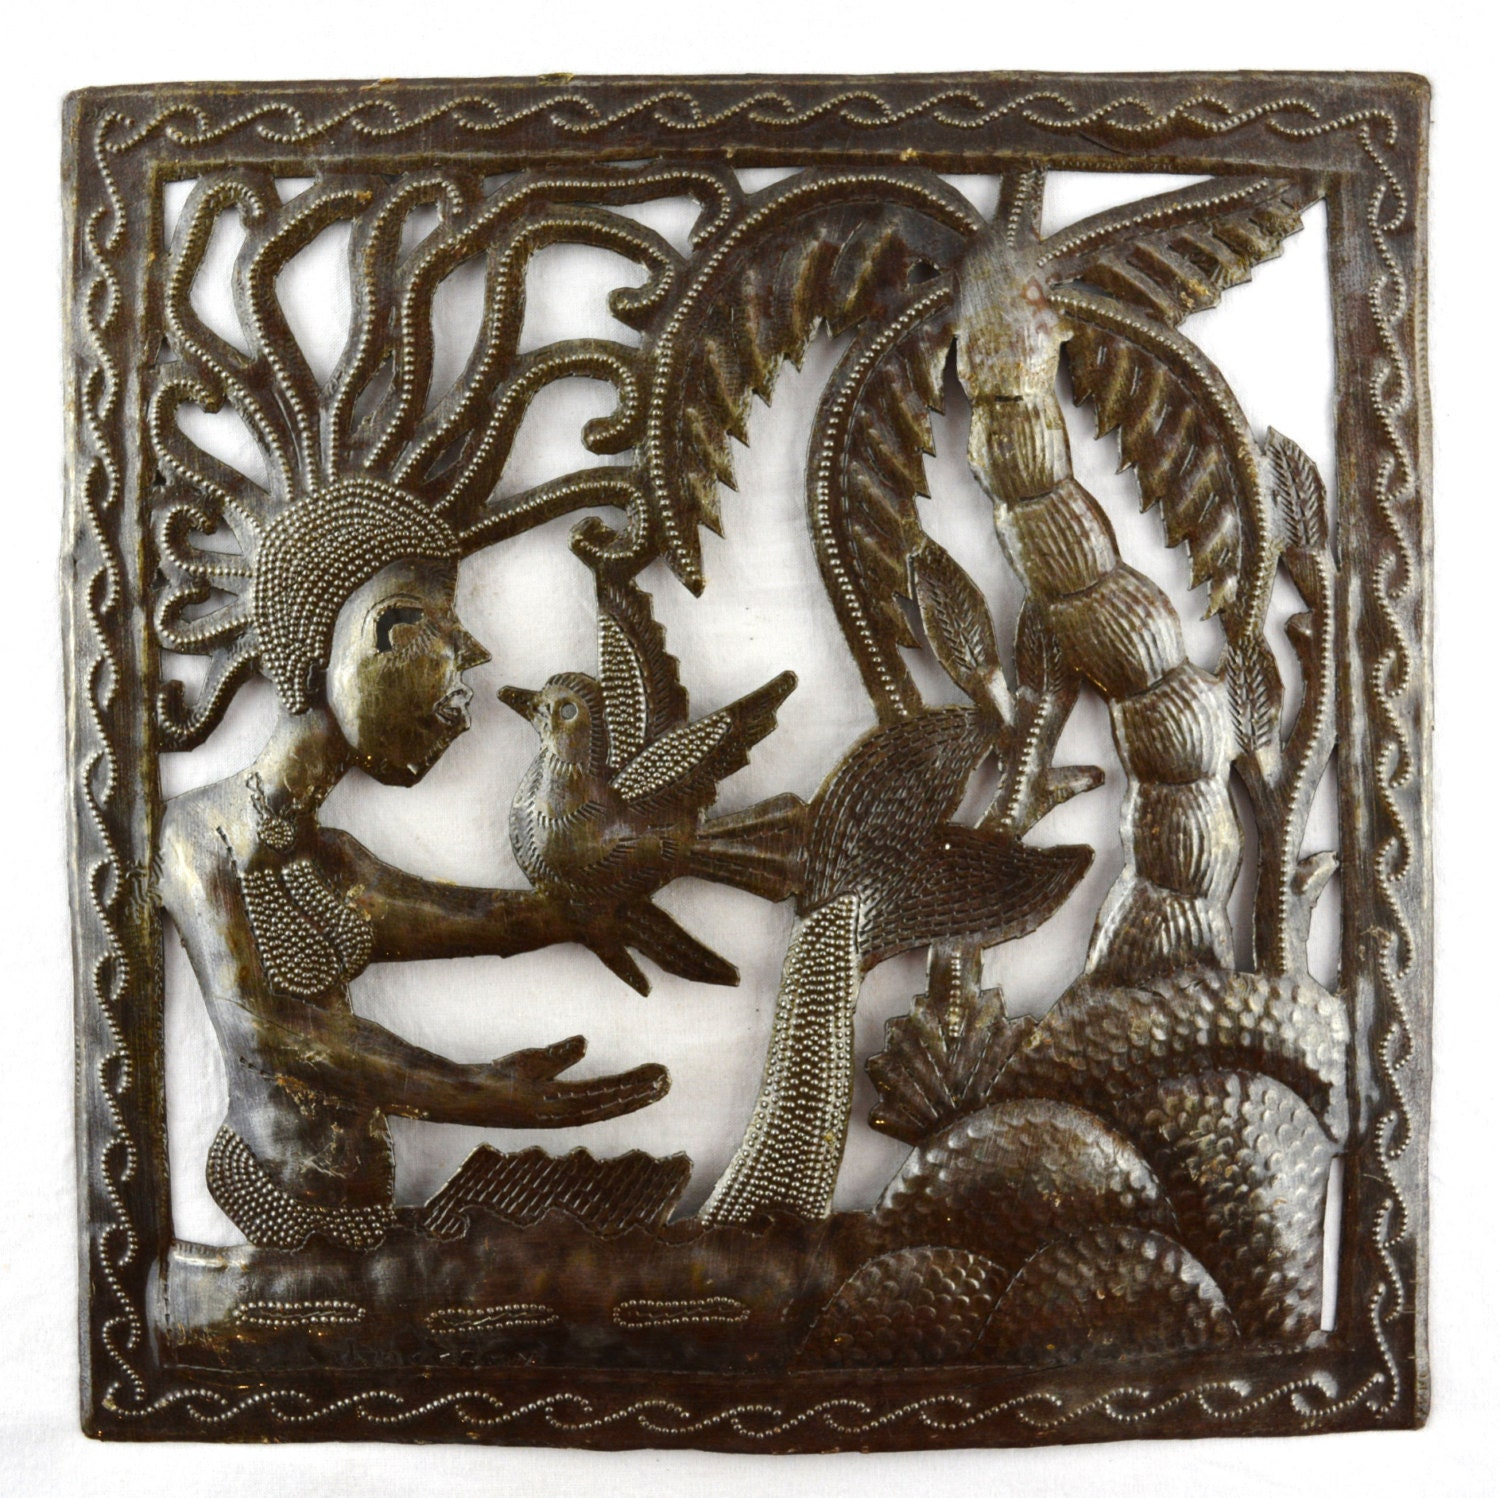 Palm Tree Metal Wall Art small mermaid with palm tree - metal wall art 11 x 11